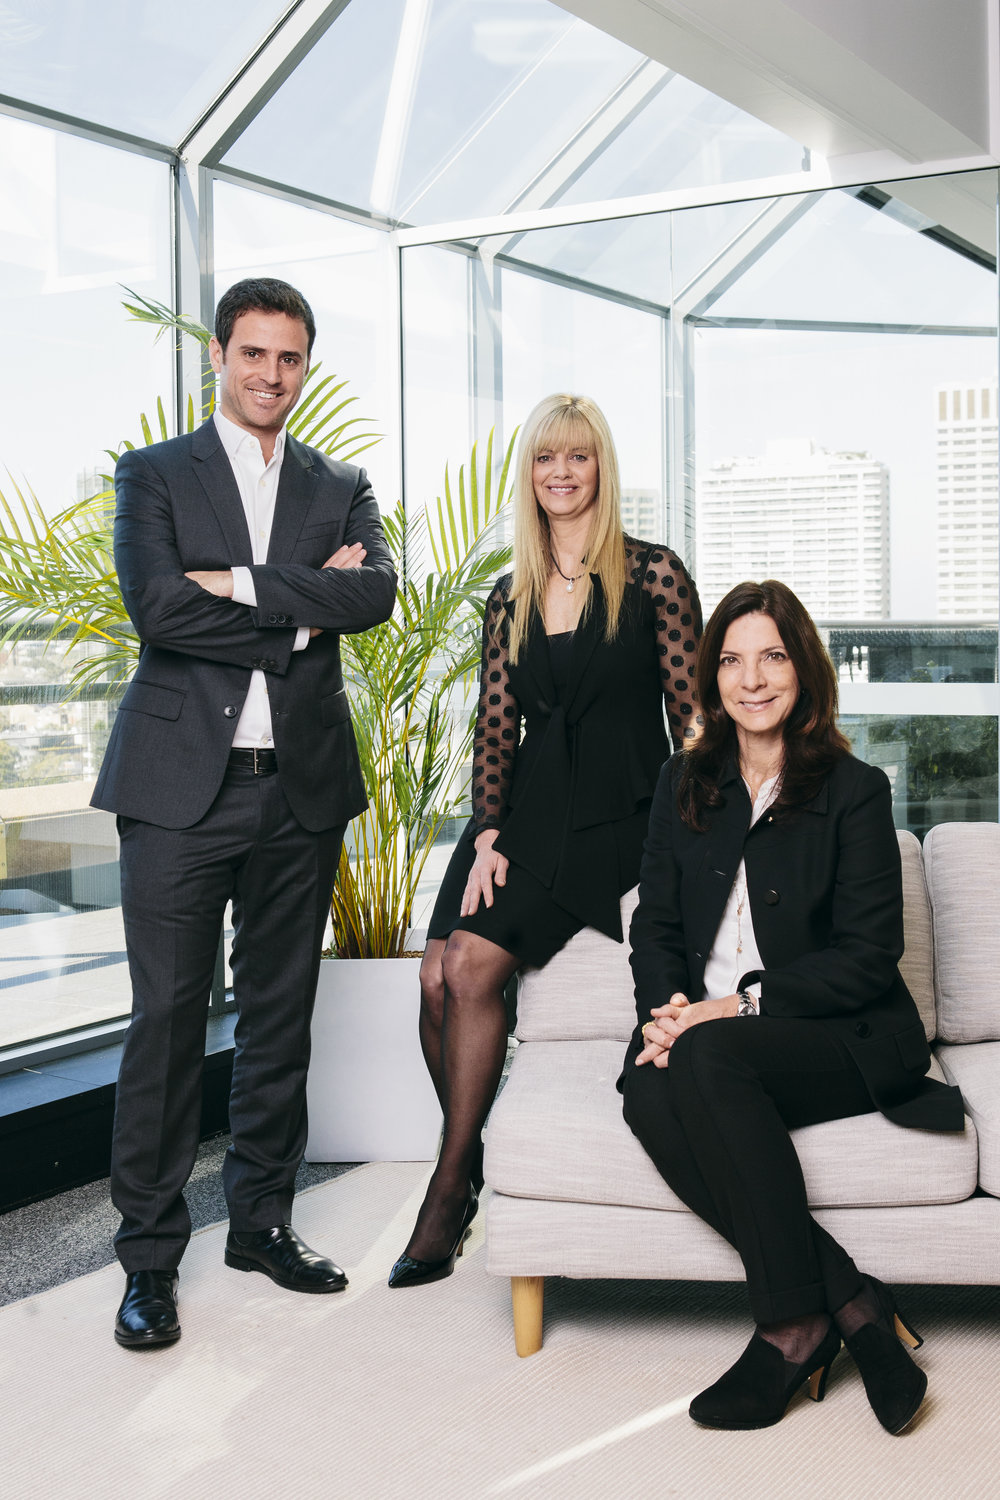 Left to right: Assaf Wahrhaft (Partner, Viola Credit), Dr Michelle Deaker (Managing Partner, OneVentures) & Ruthi Simha (Founder & General Partner, Viola Credit).